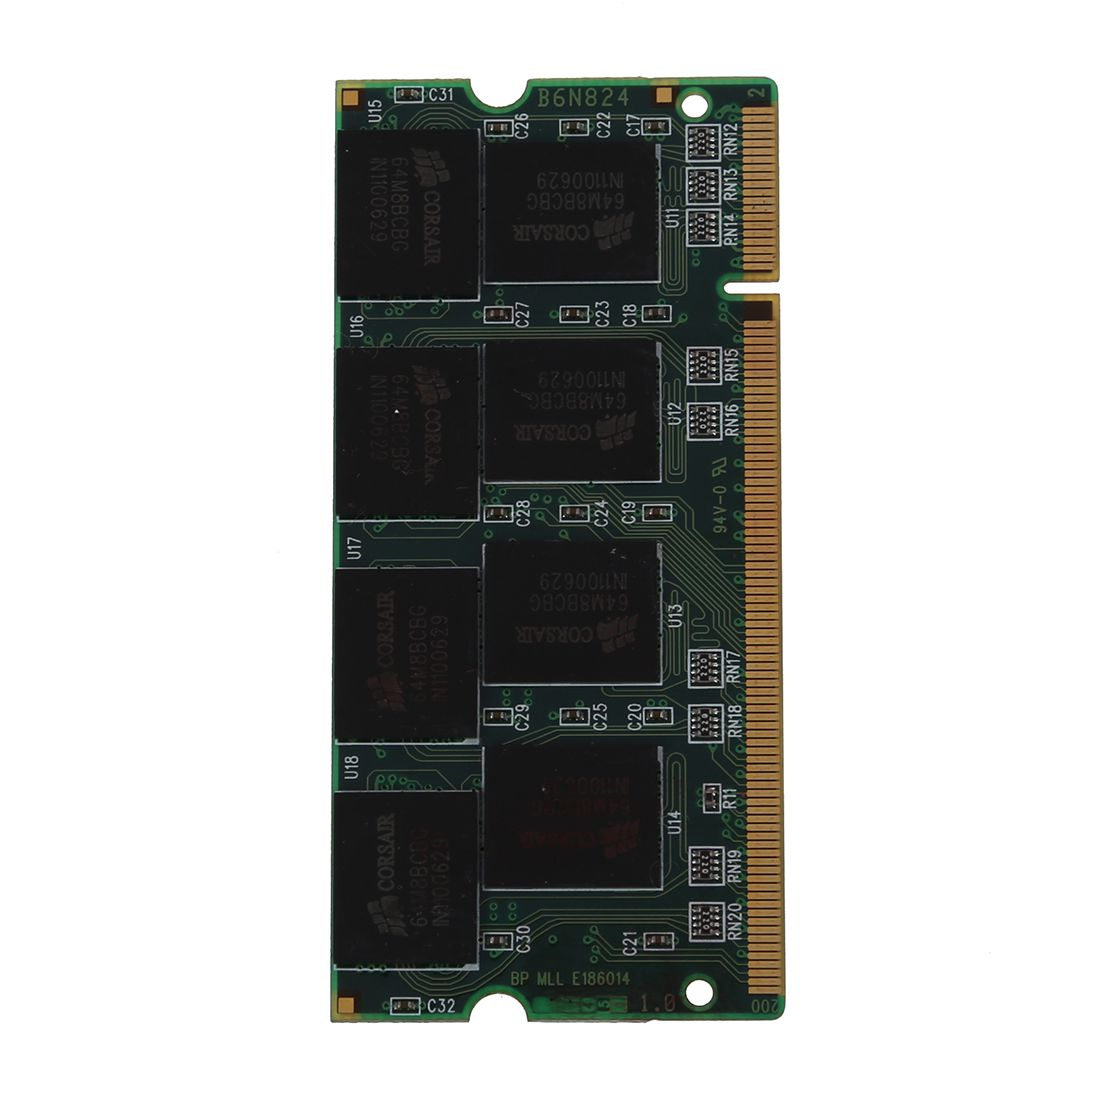 DDR 1GB Sodimm Laptop Memory With 200 Pins Compatible With Multiple Systems